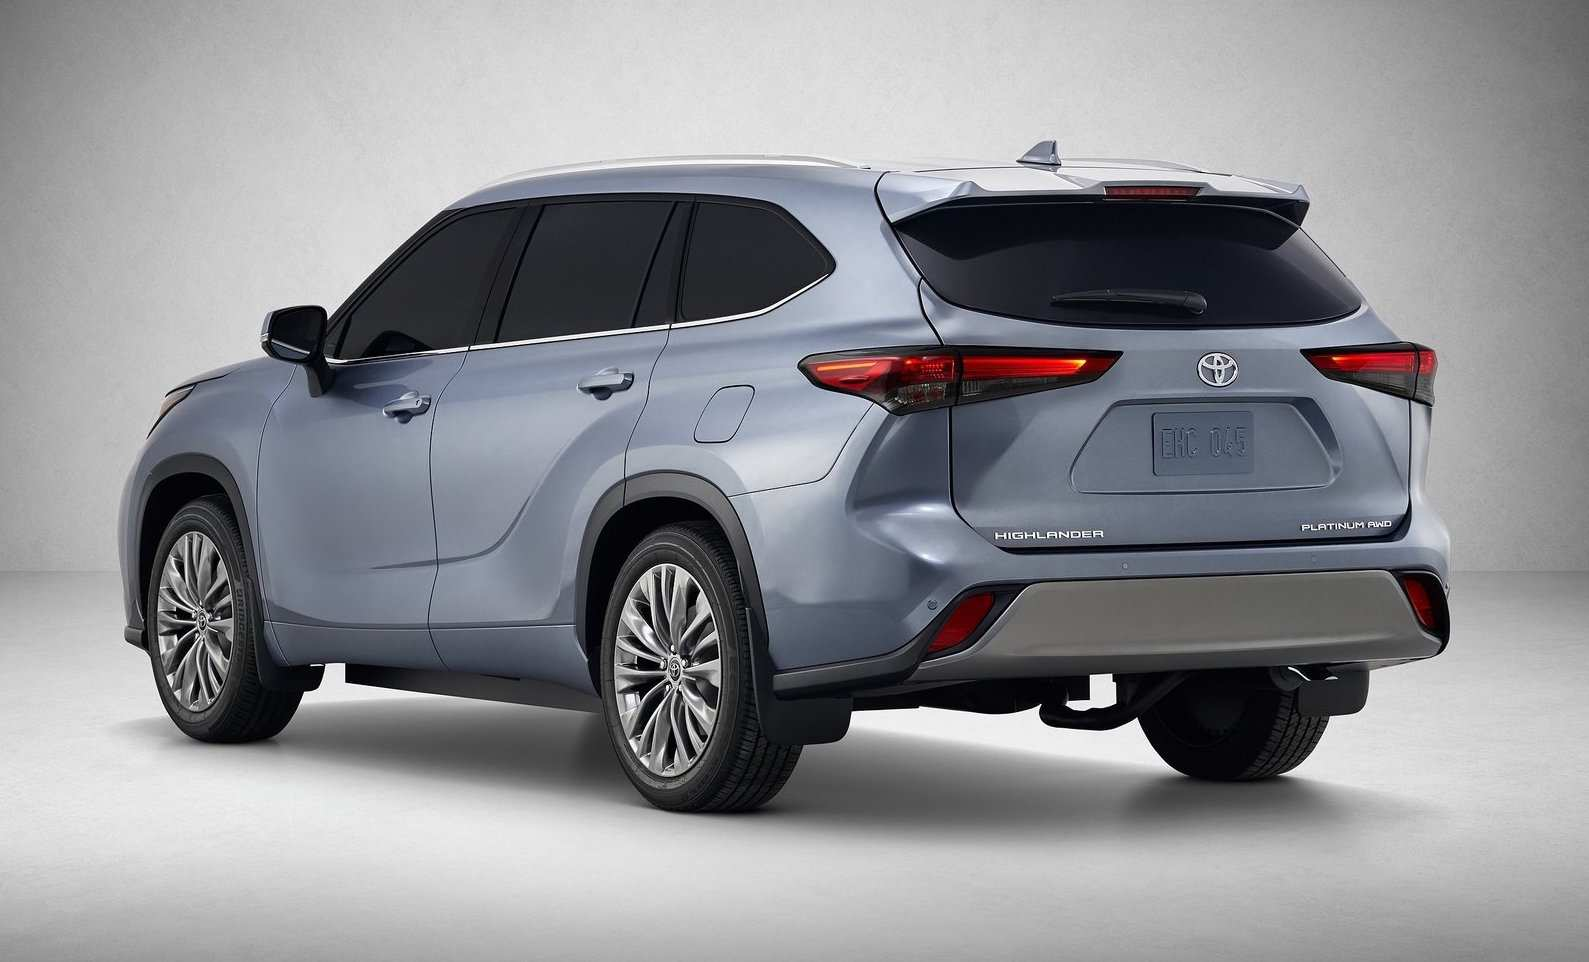 96 All New Toyota Kluger 2020 Australia Release Date Exterior for Toyota Kluger 2020 Australia Release Date